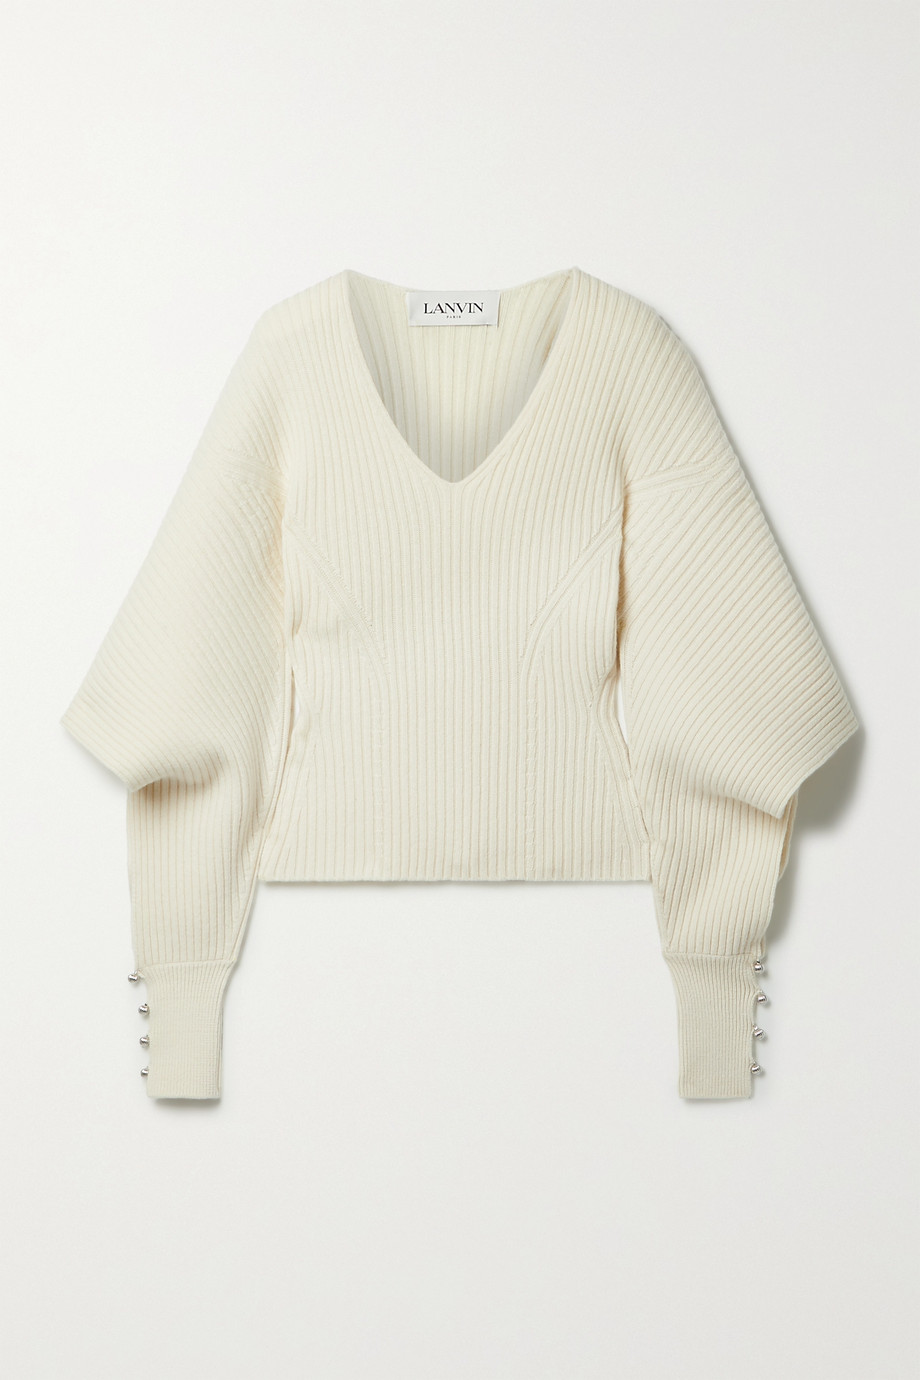 Lanvin Cutout embellished ribbed wool and cashmere-blend sweater